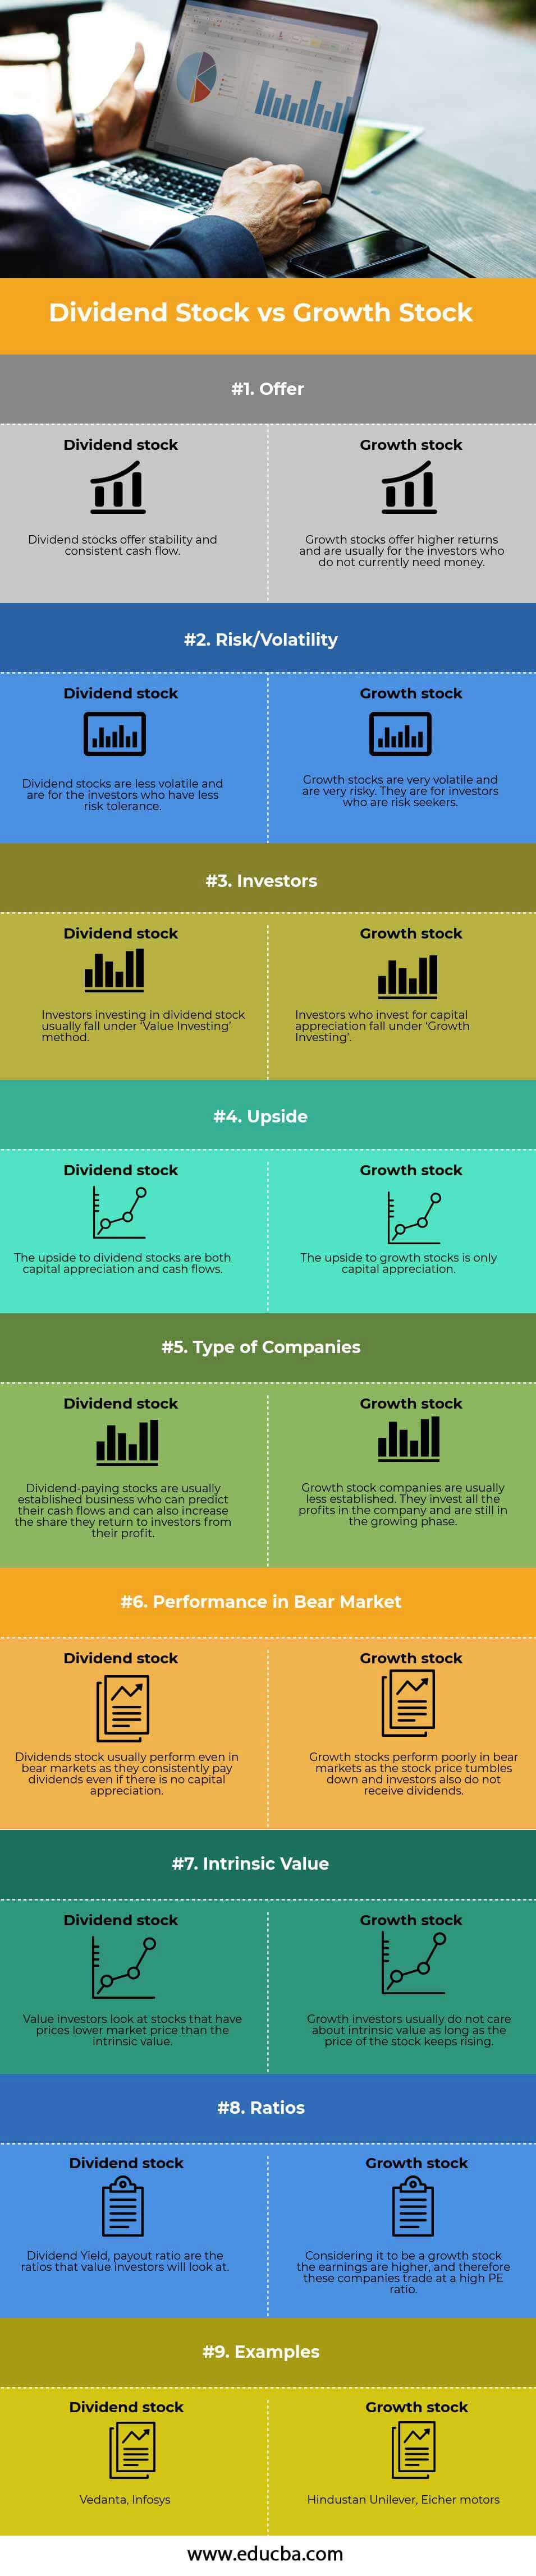 Dividend-Stock-vs-Growth-Stock info